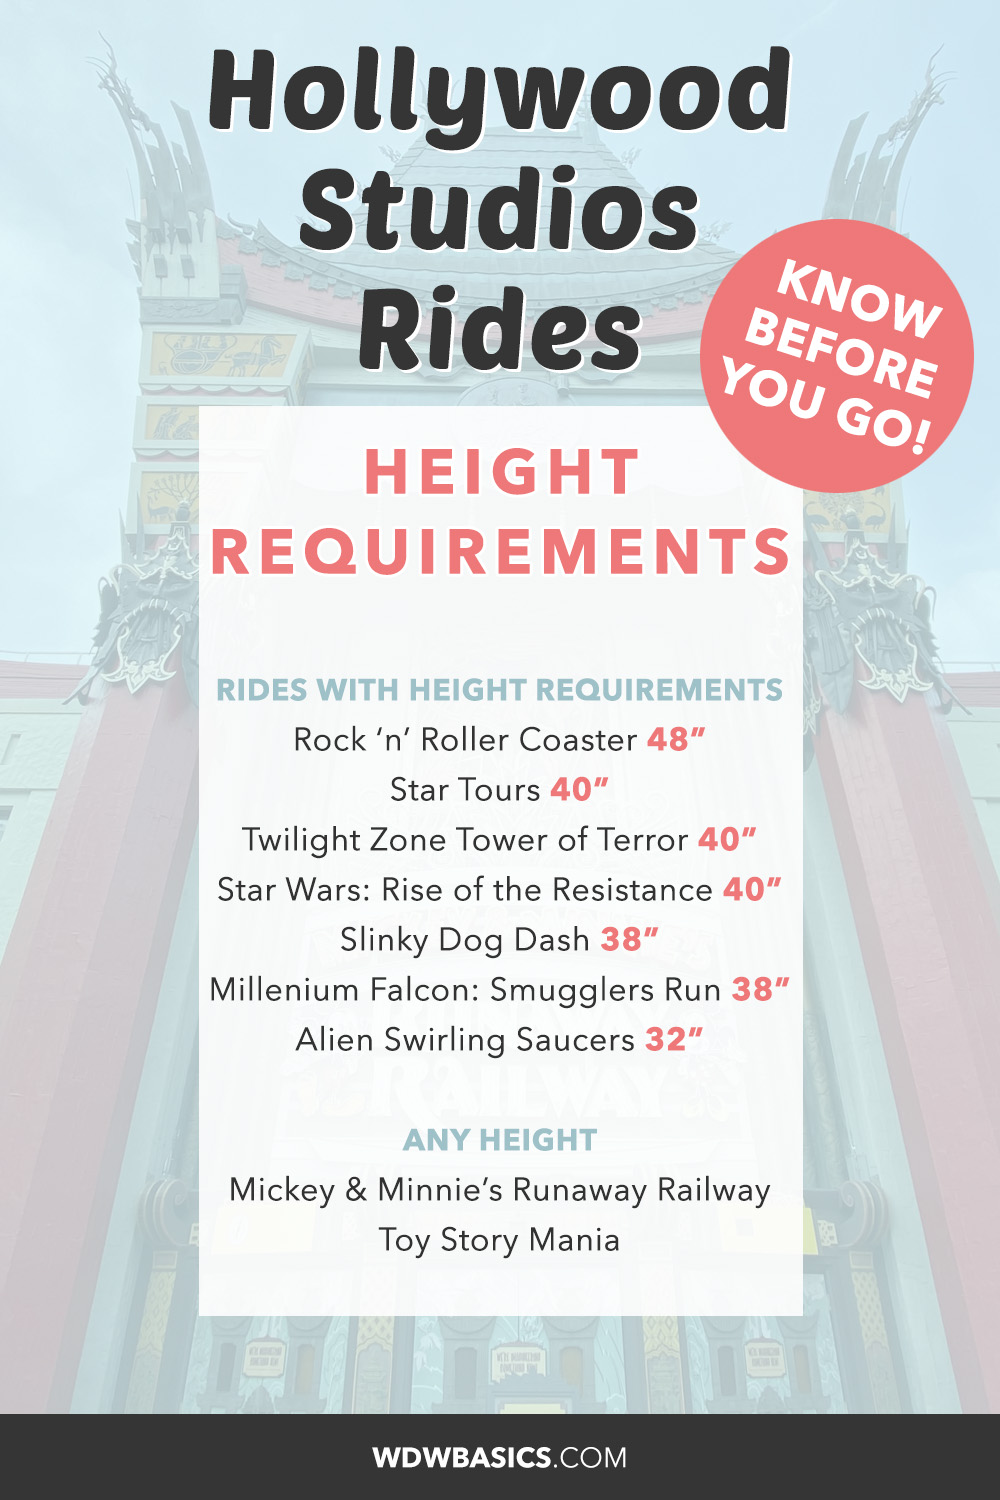 Hollywood Studios Rides height requirements